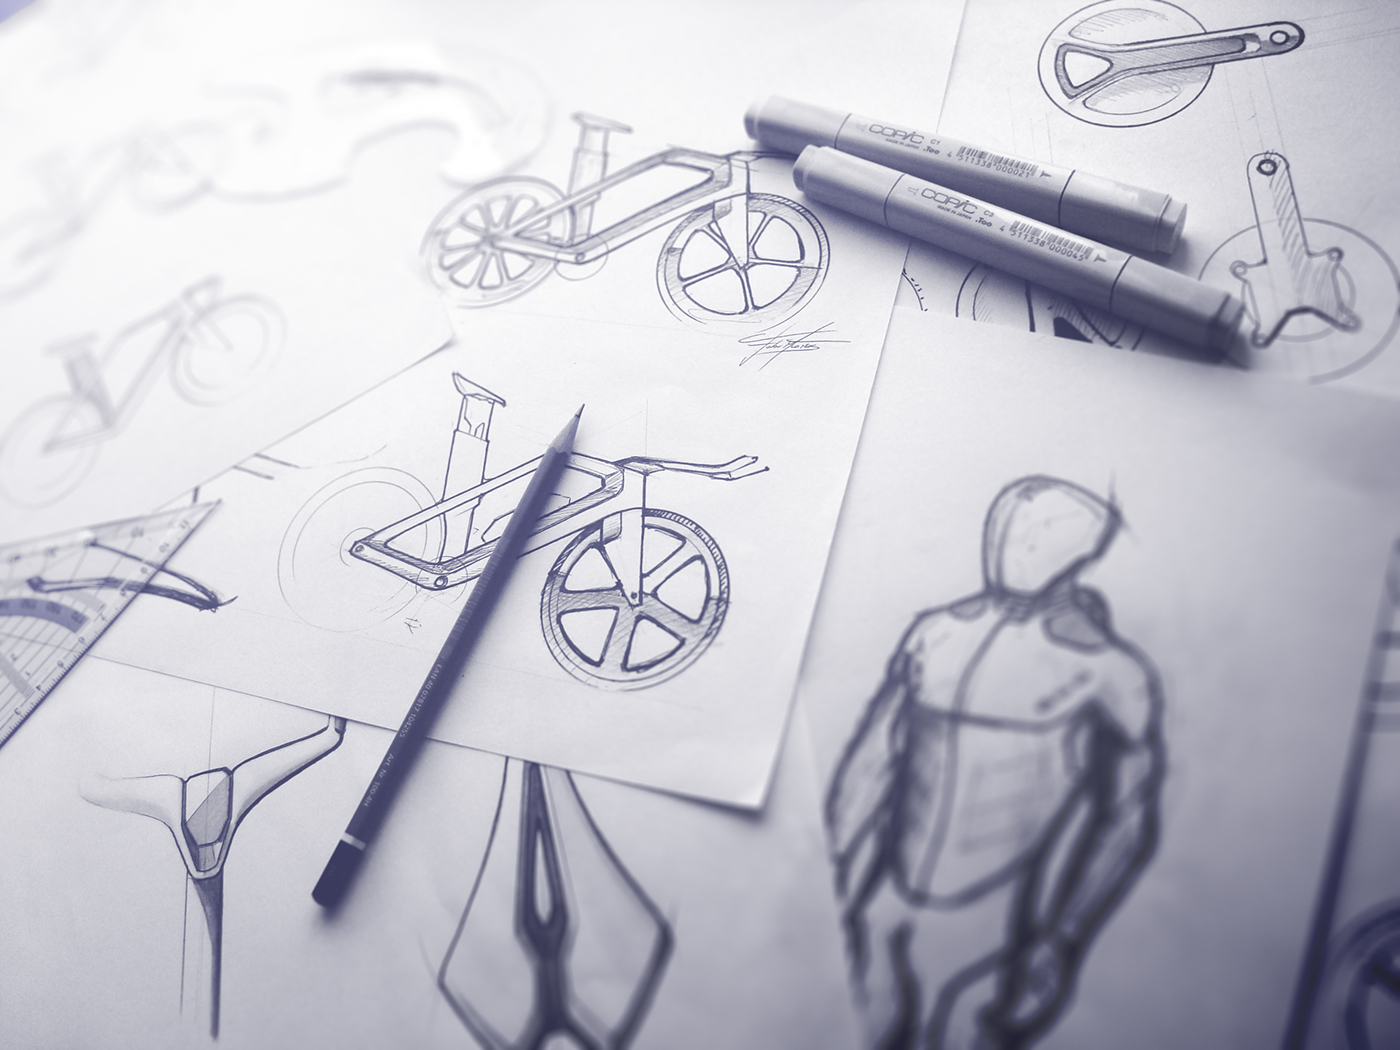 Bicycle Bike futuristic connected Trek specialized b'twin revolt portuguese design Cycling speed Cannondale aero bicicleta